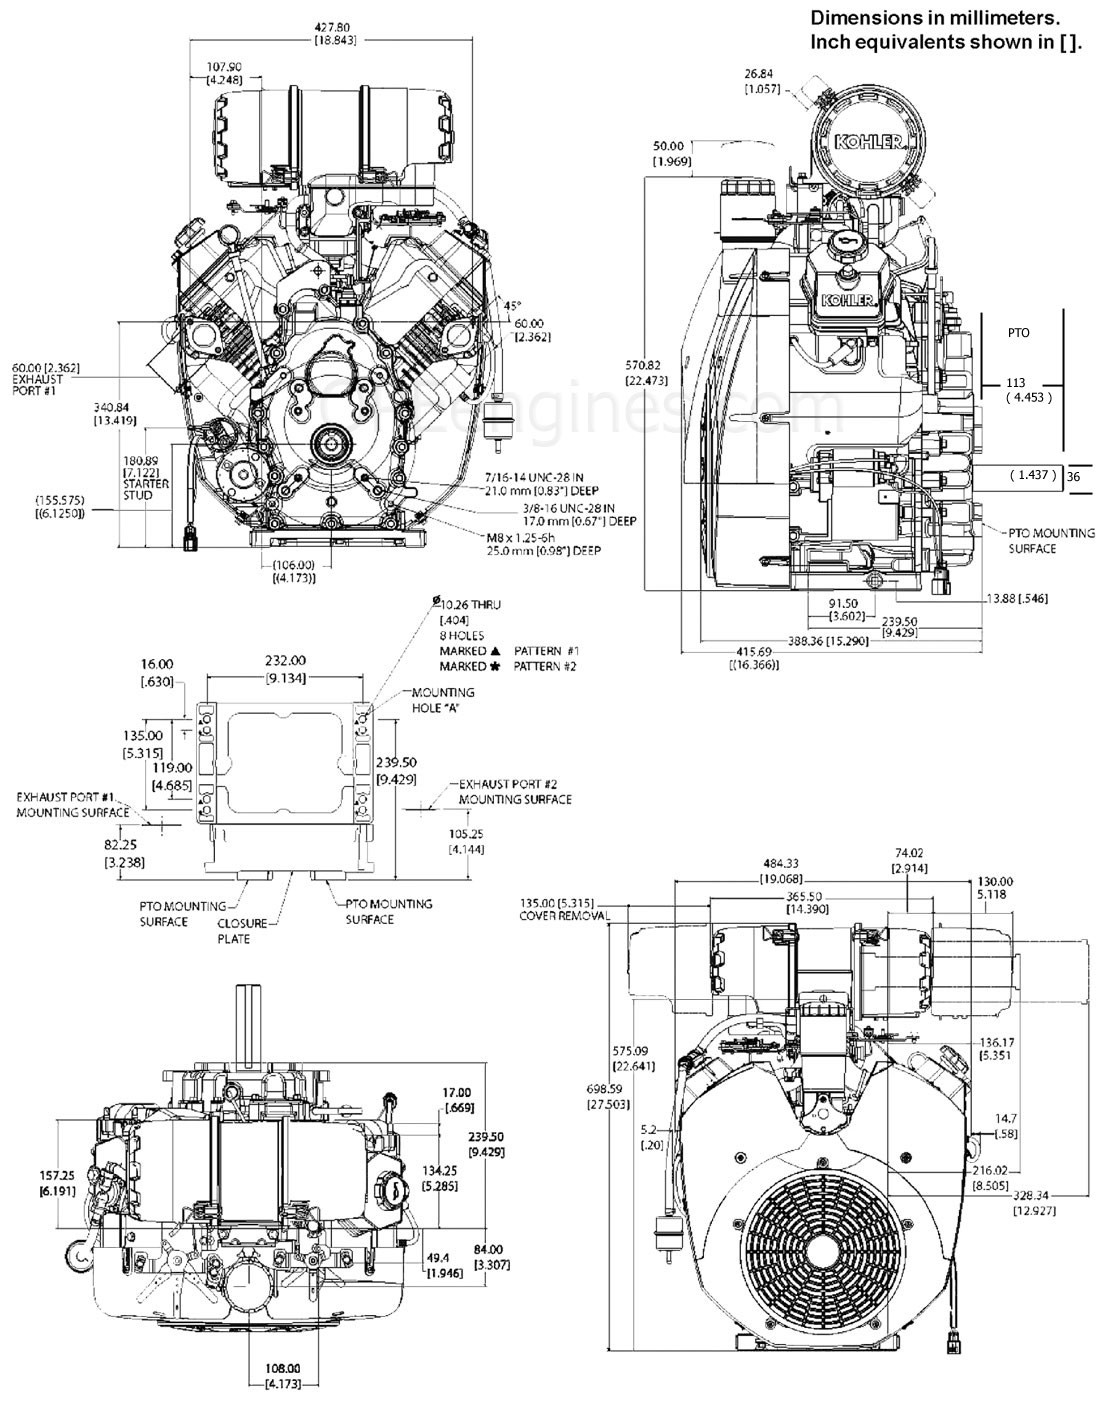 kohler command 12 5 wiring diagram kohler discover your wiring kohler mand 2 3 engine number location kohler command 12 5 wiring diagram